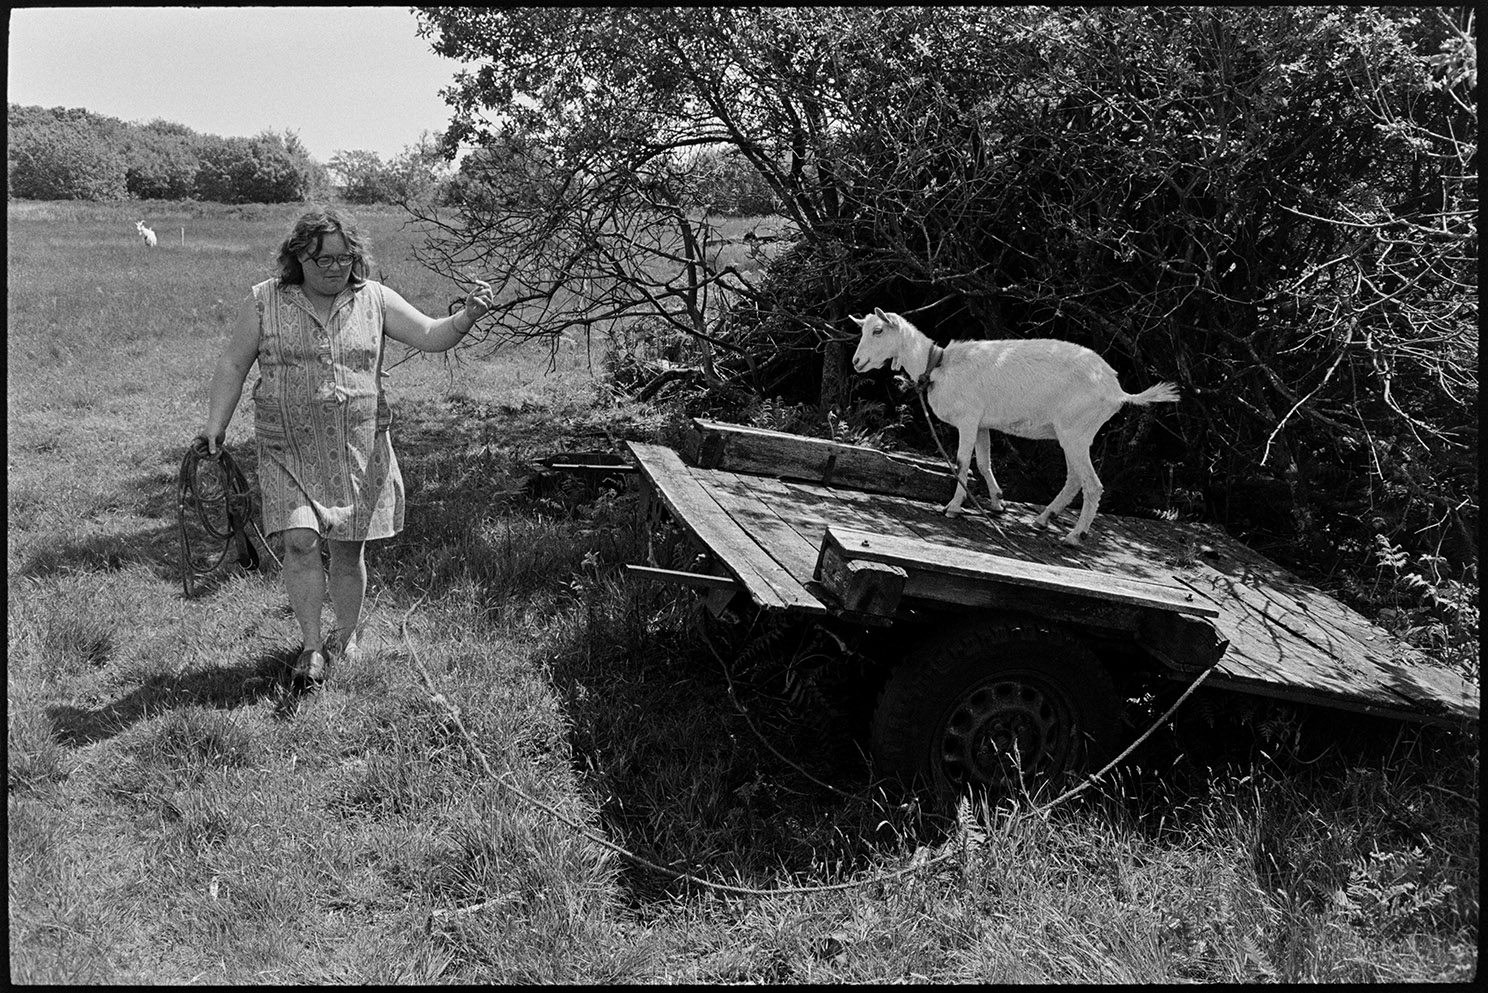 Farming practices and livestock, Olive Bennett tethering goats Beaford, Cupper's Piece, August 1987.